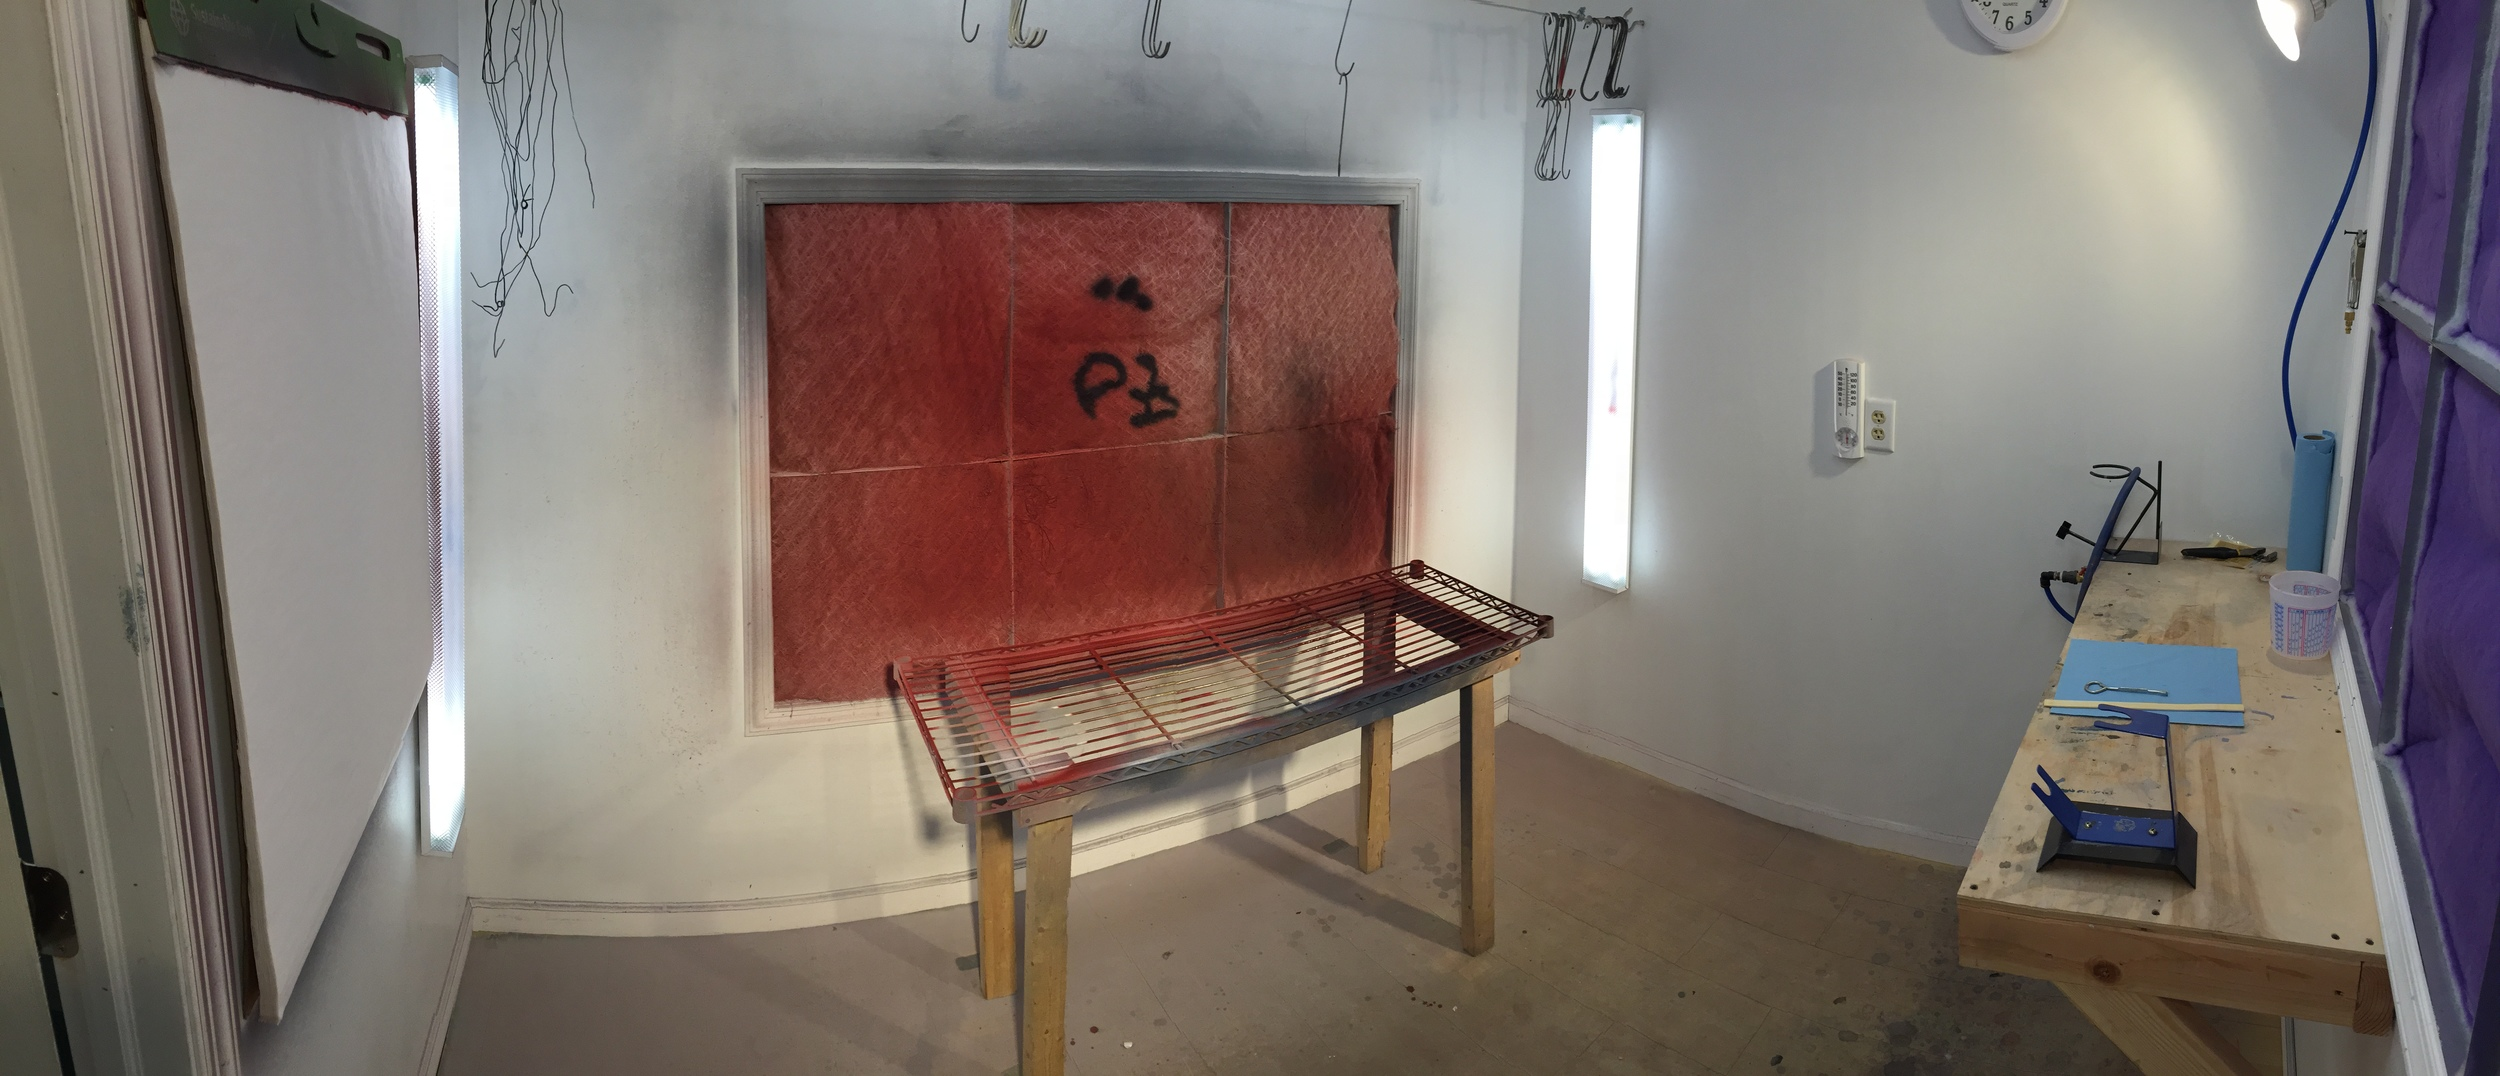 A pano showing the paint booth. The booth itself is about 9x9' and vented to the outdoors. There is an electric heater within it to keep it at a constant temperature for painting.